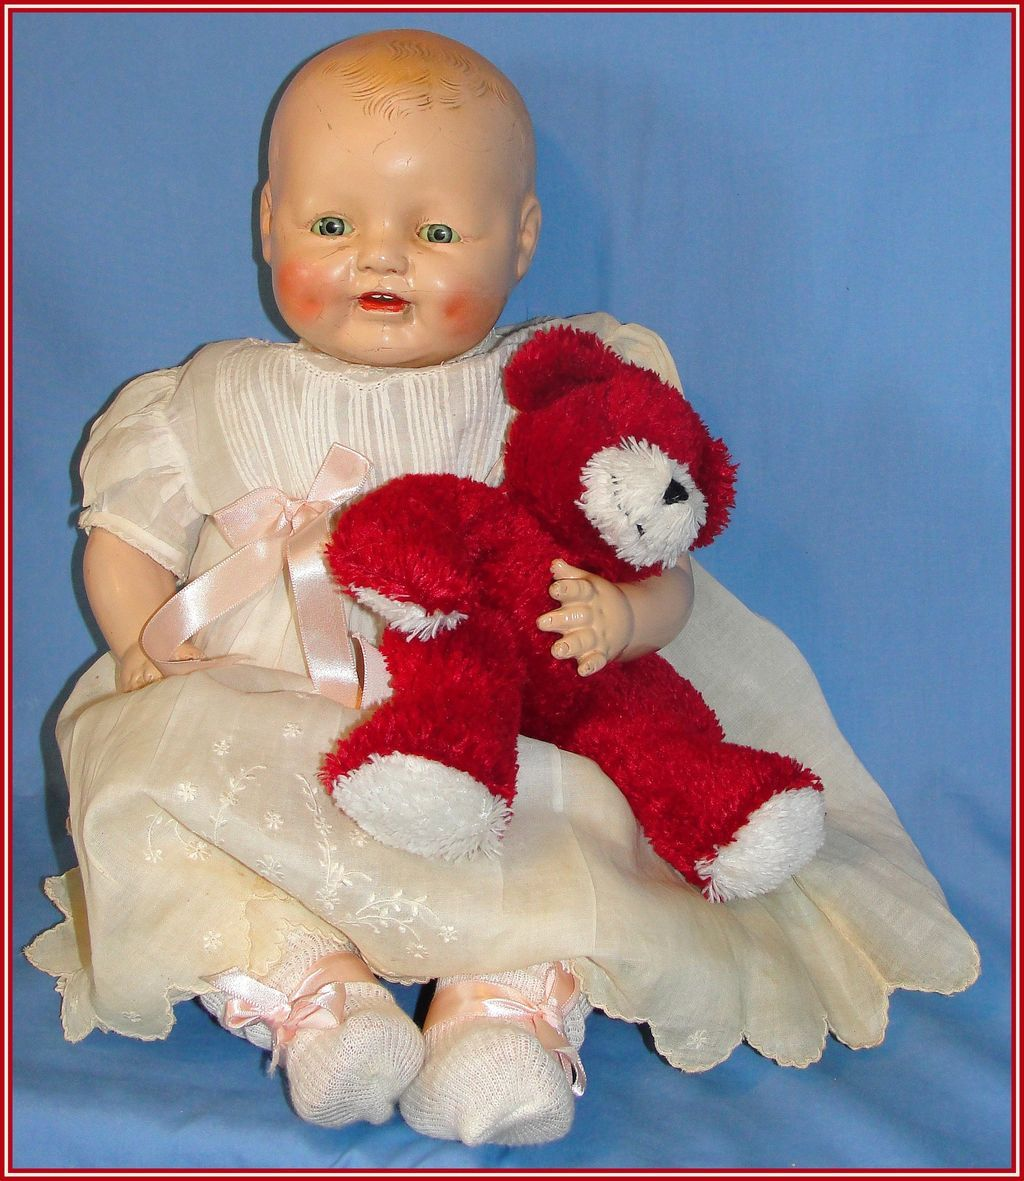 Chubby 1928 Baby Dimples Doll by Horsman - as is